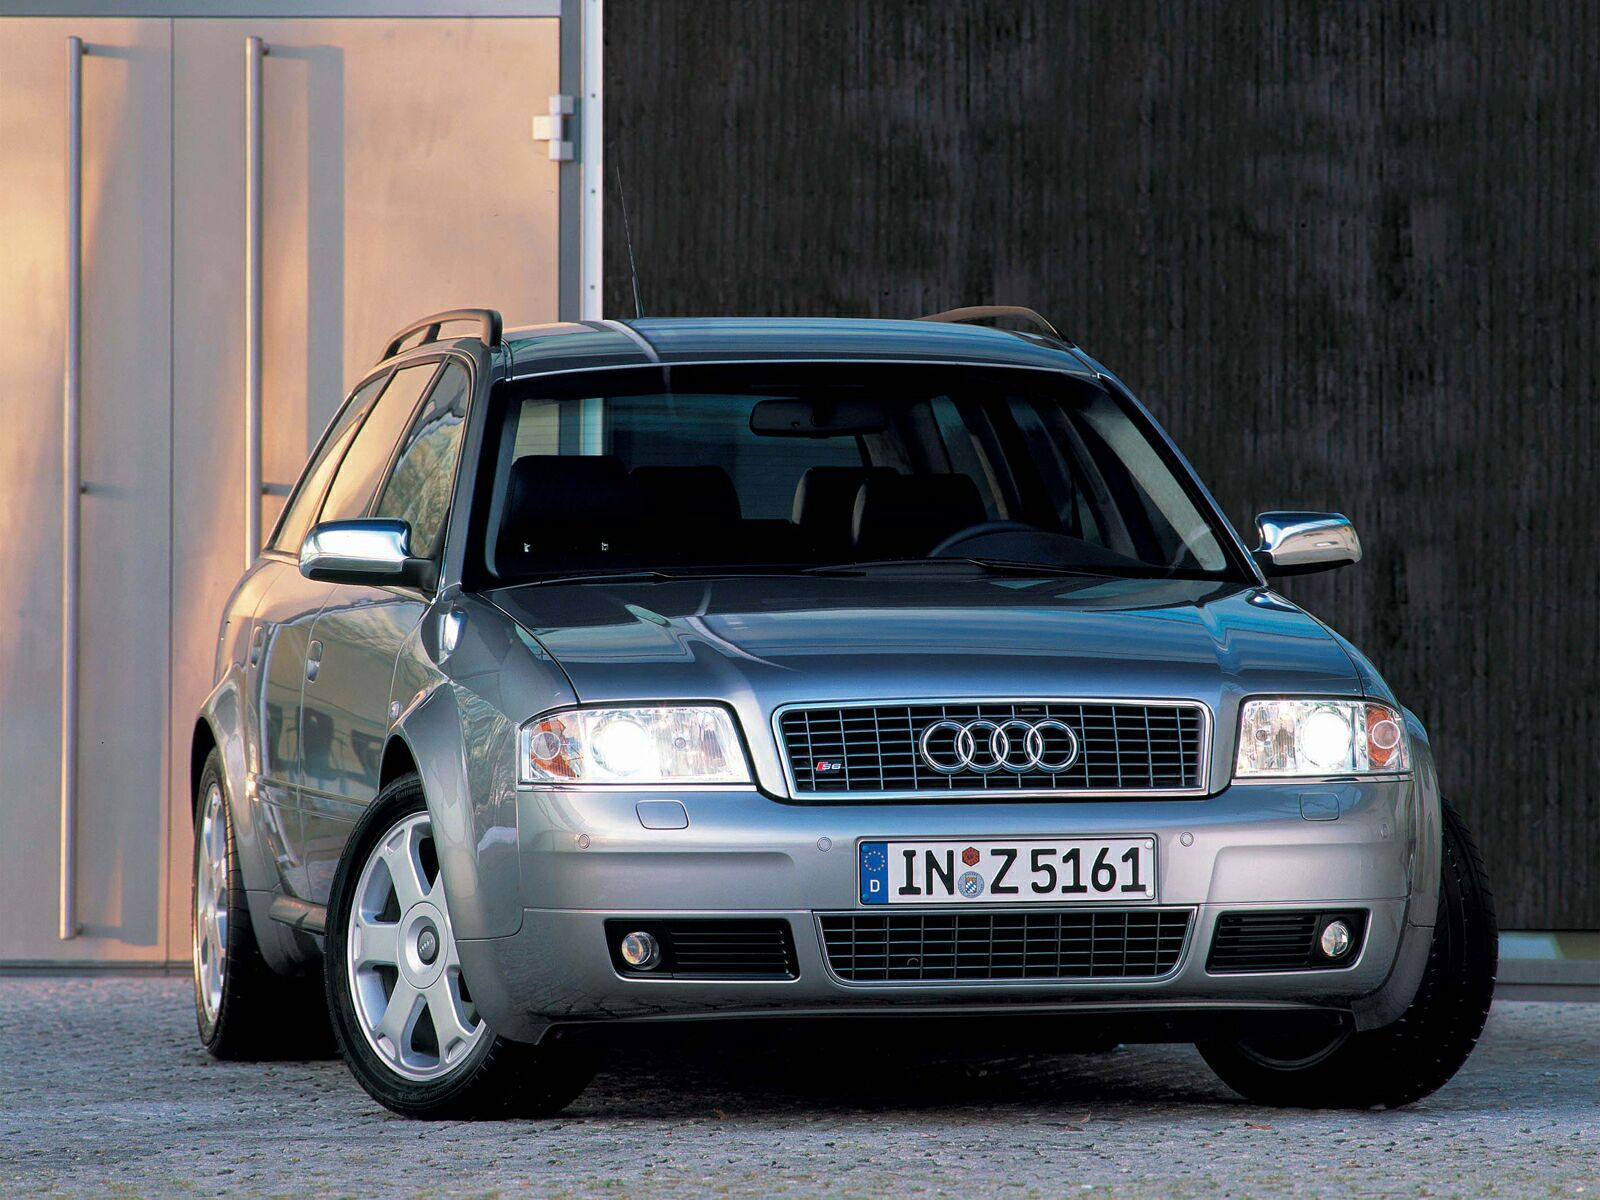 2000 Audi S6 avant (4b,c5) – pictures, information and specs - Auto